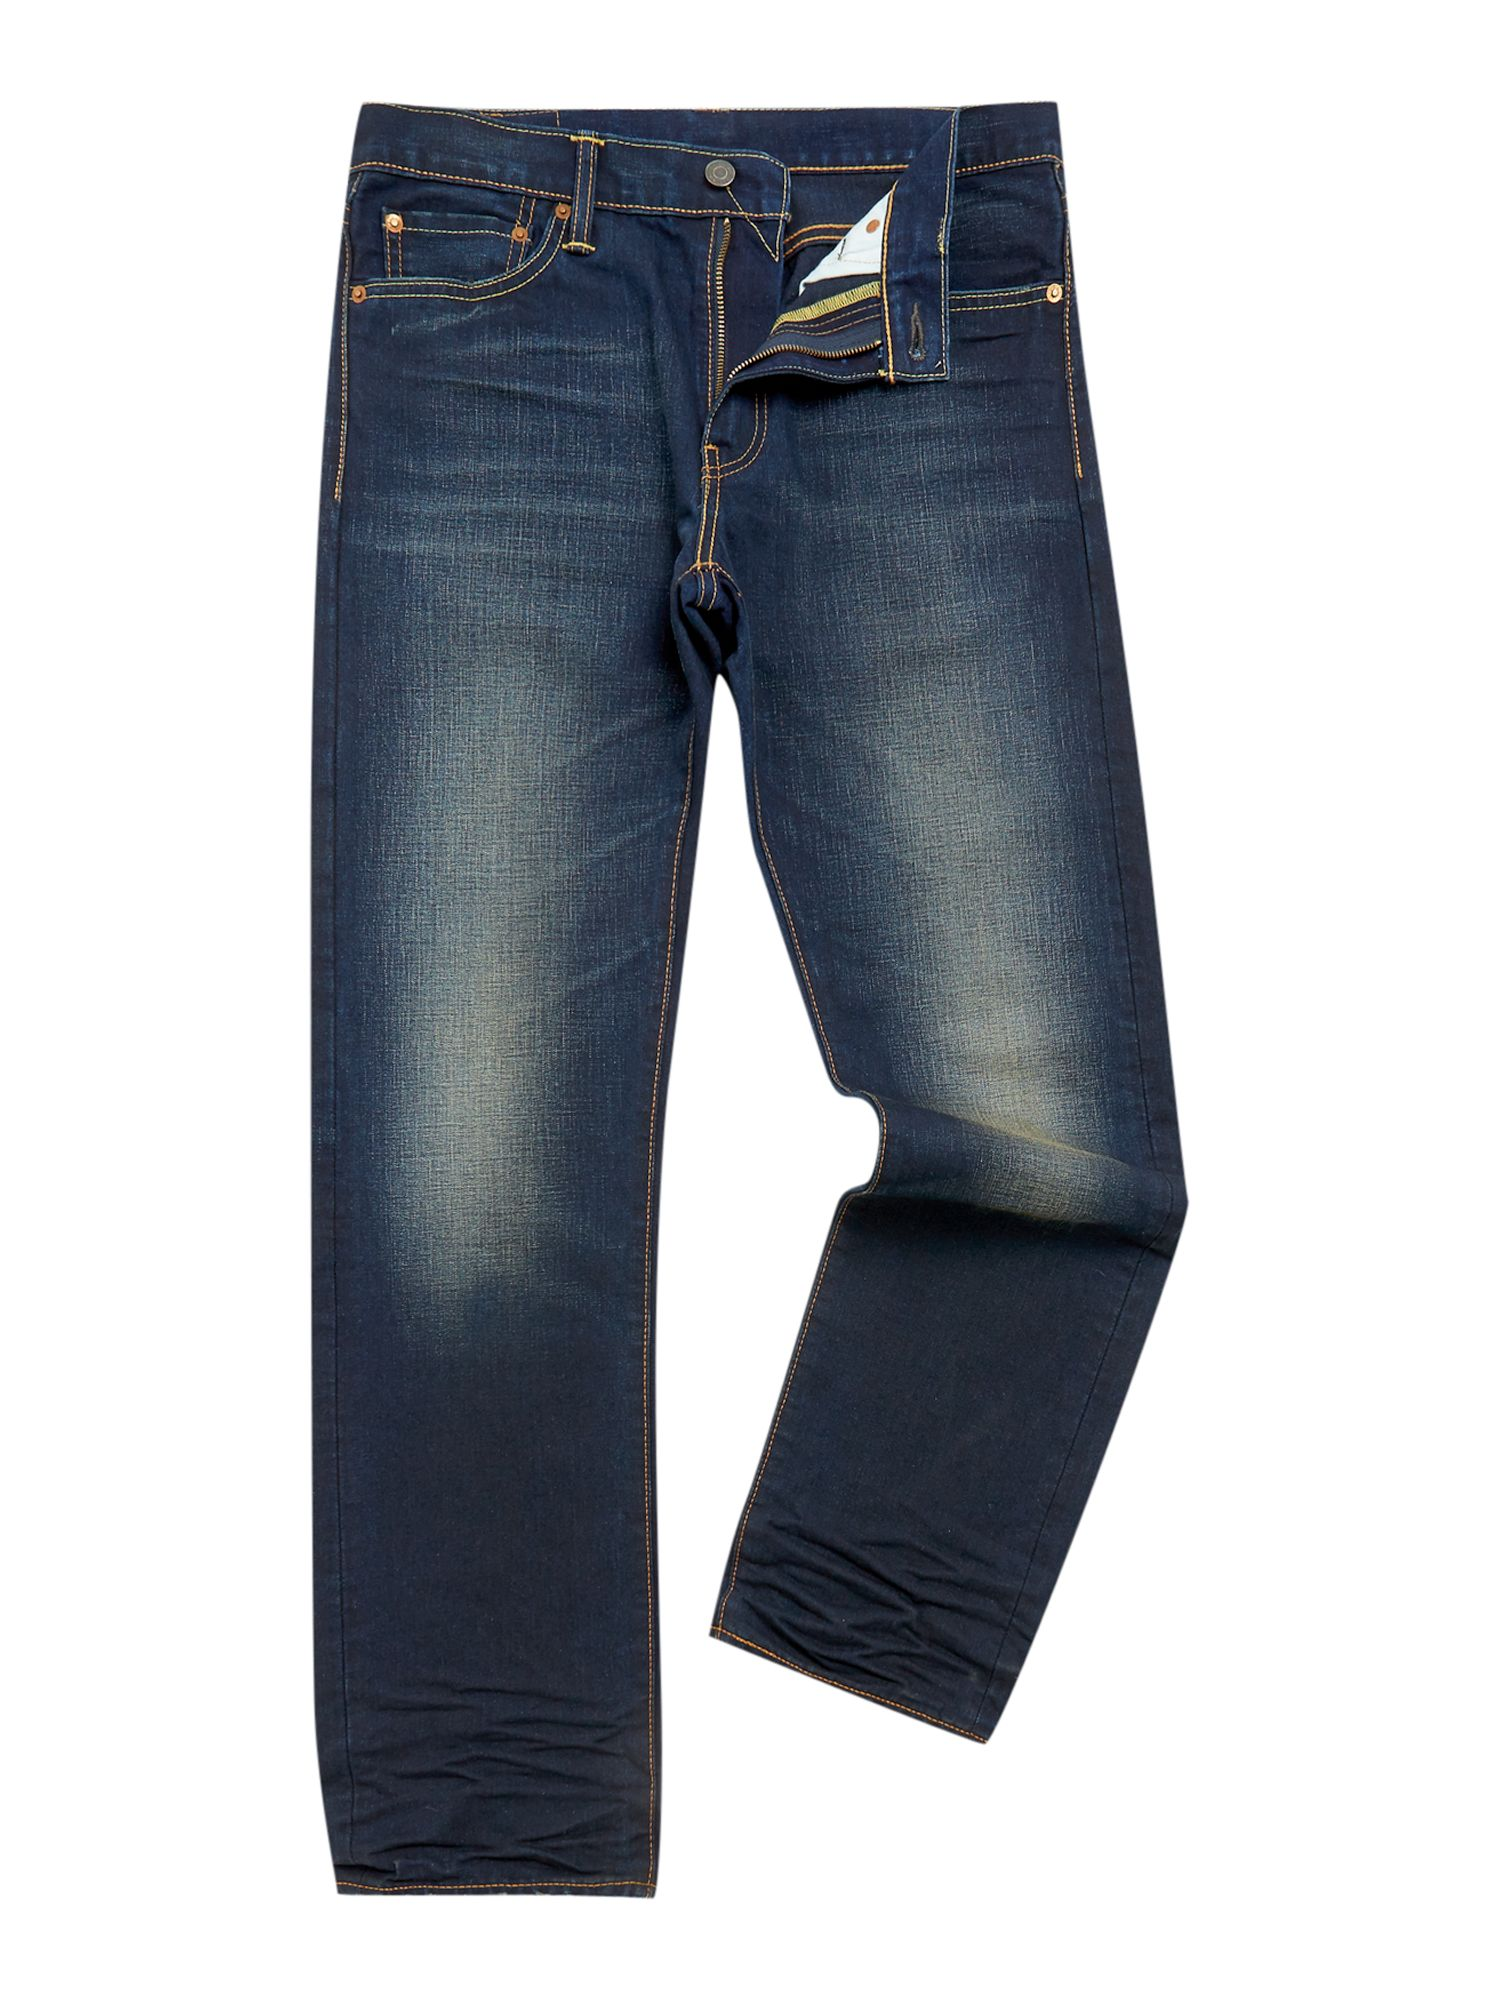 504 straight leg clouds rest jeans